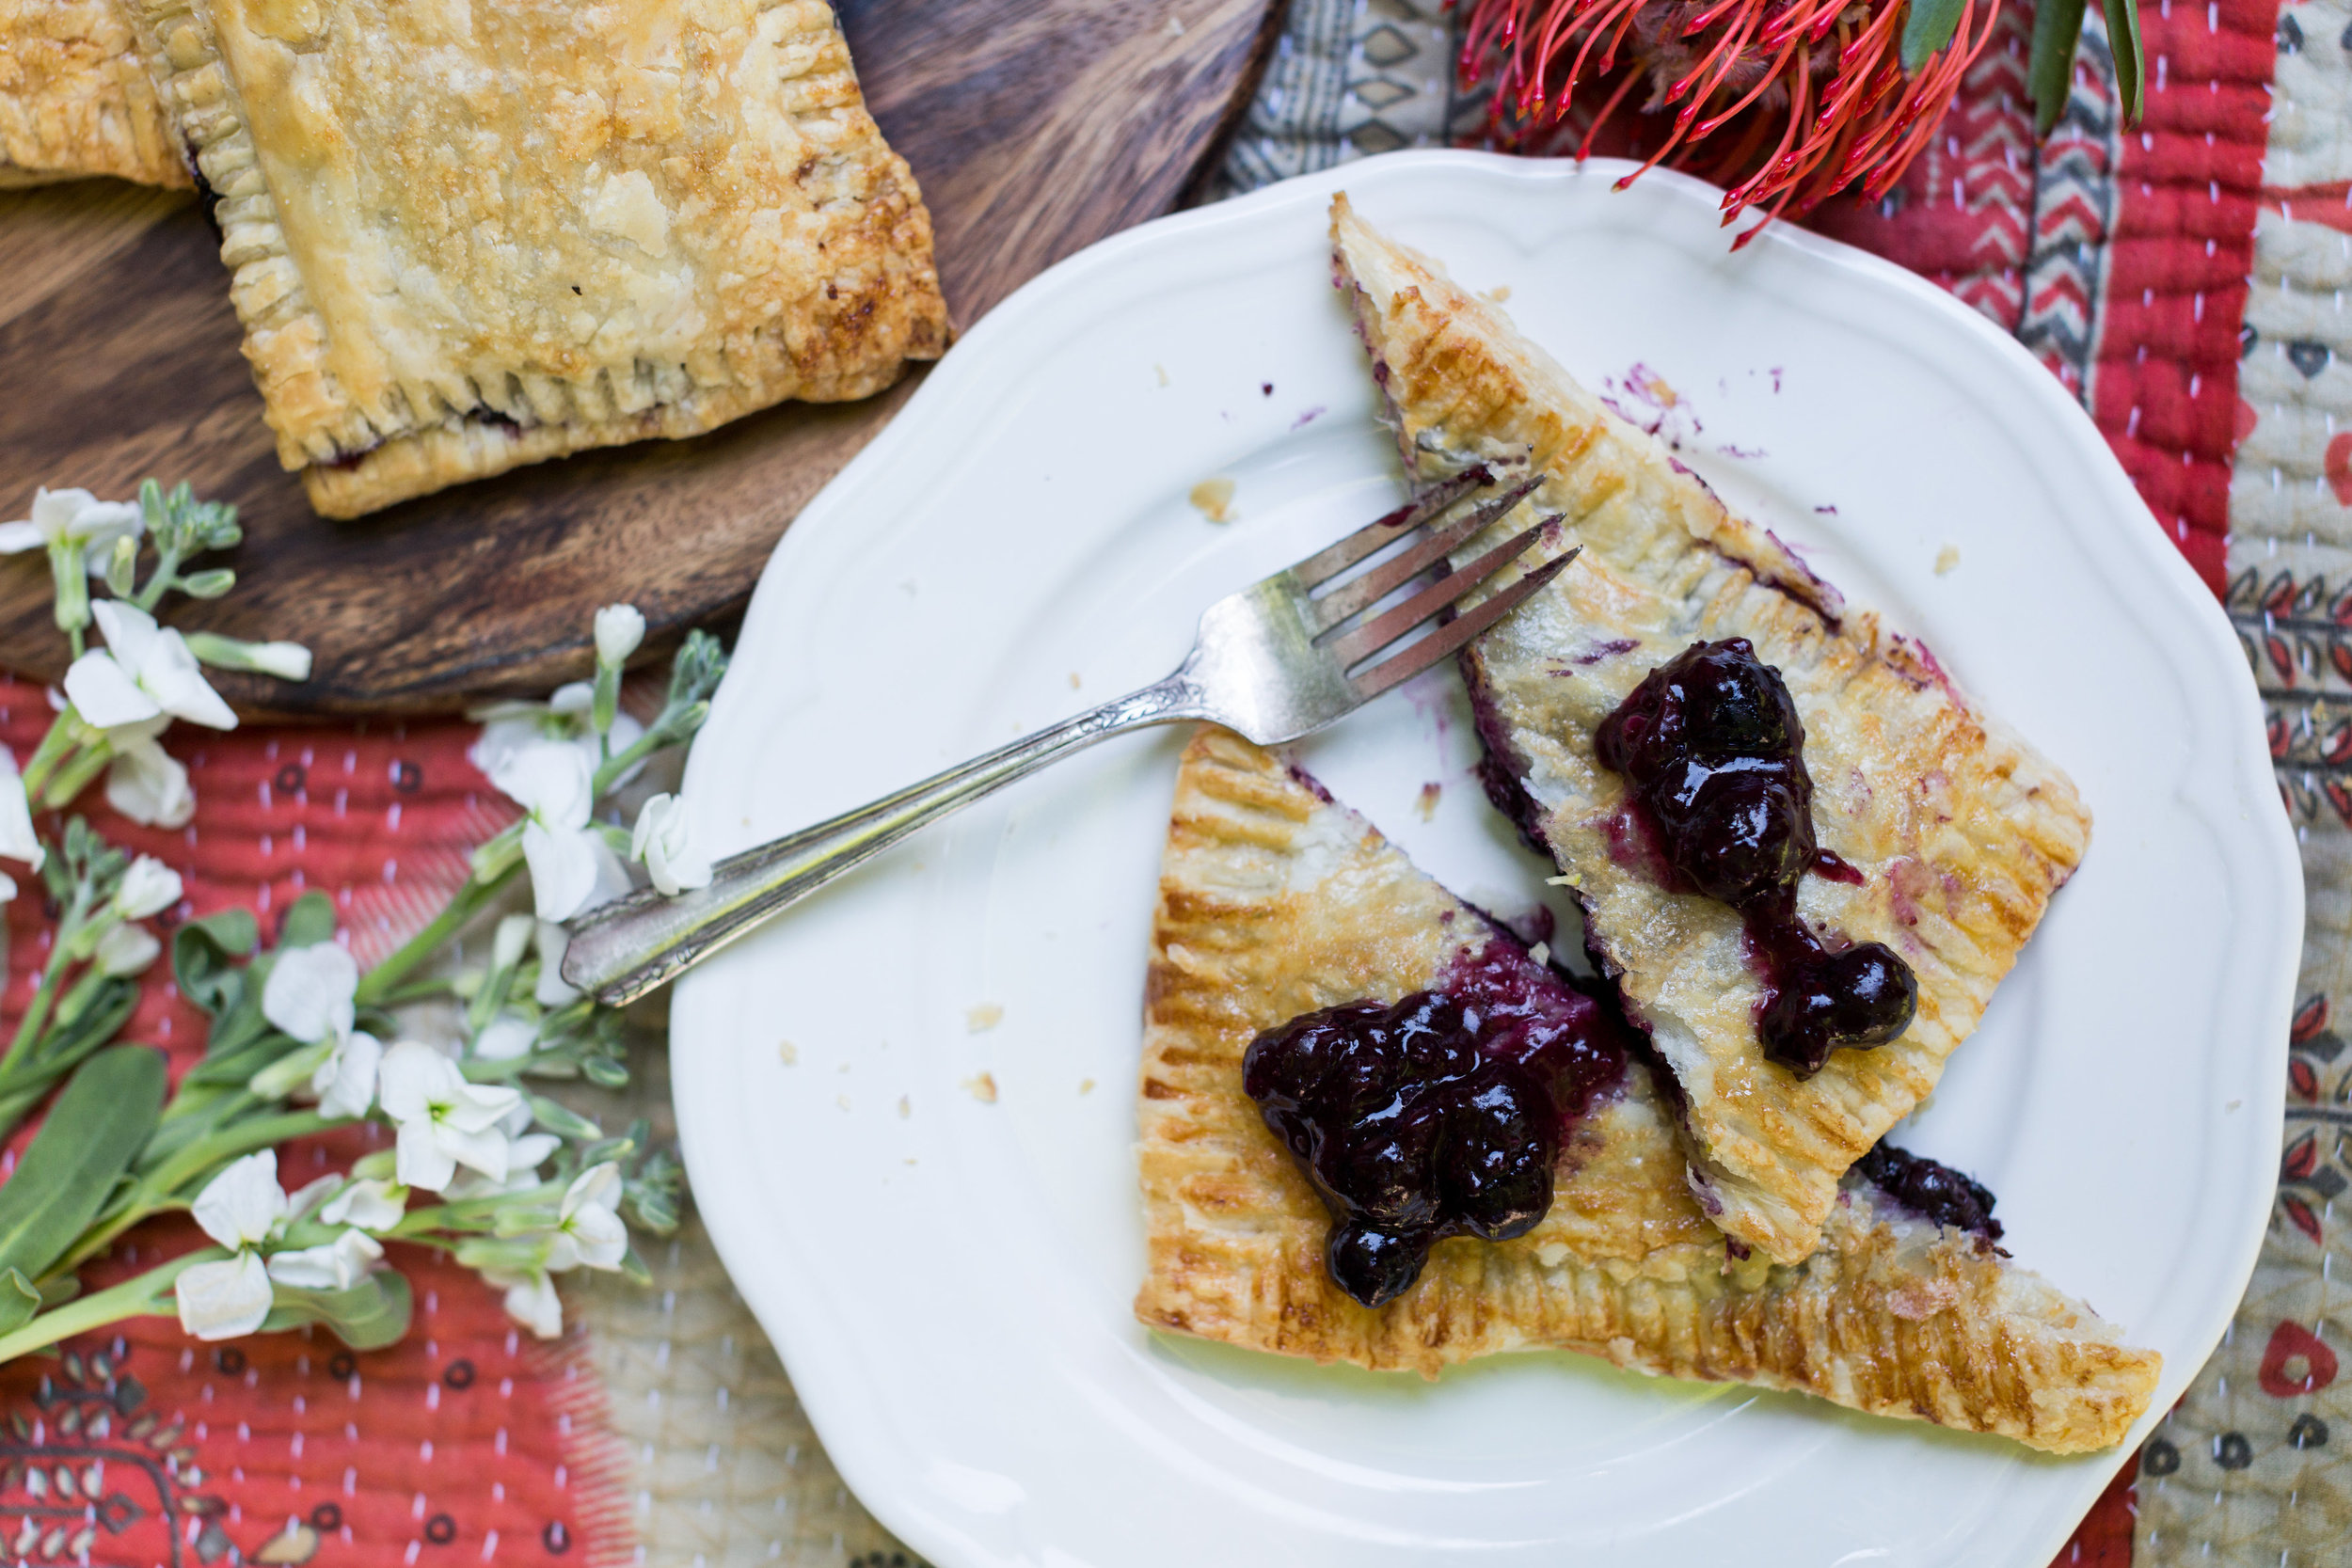 Blueberry Hand Pie Recipe from CT Eats Out